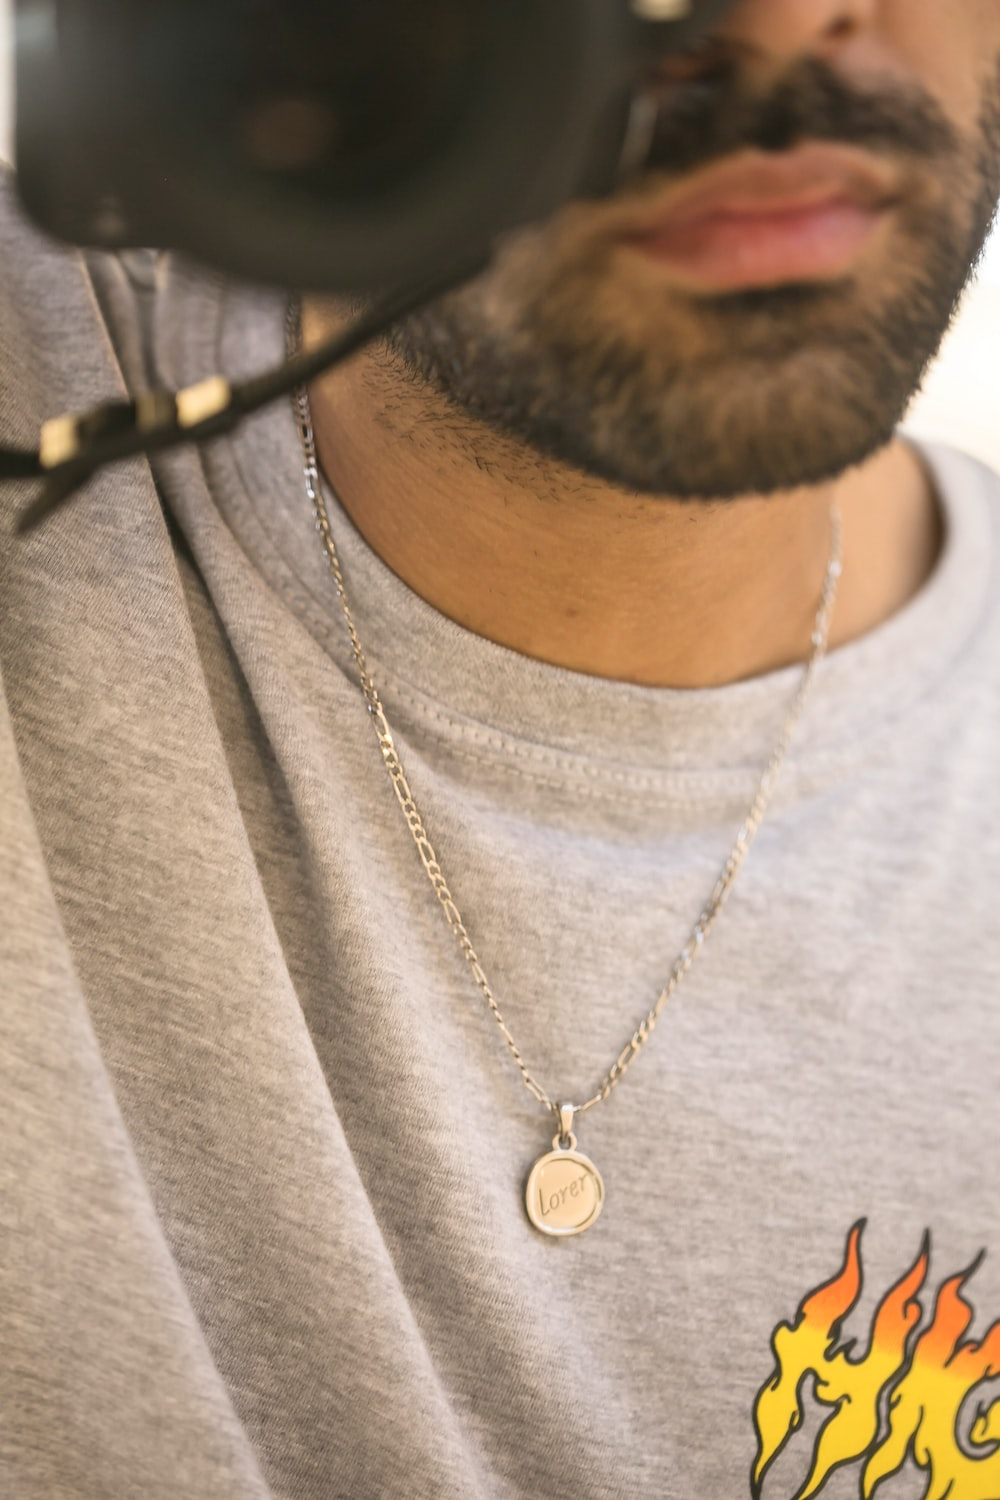 man in gray crew neck shirt wearing silver necklace